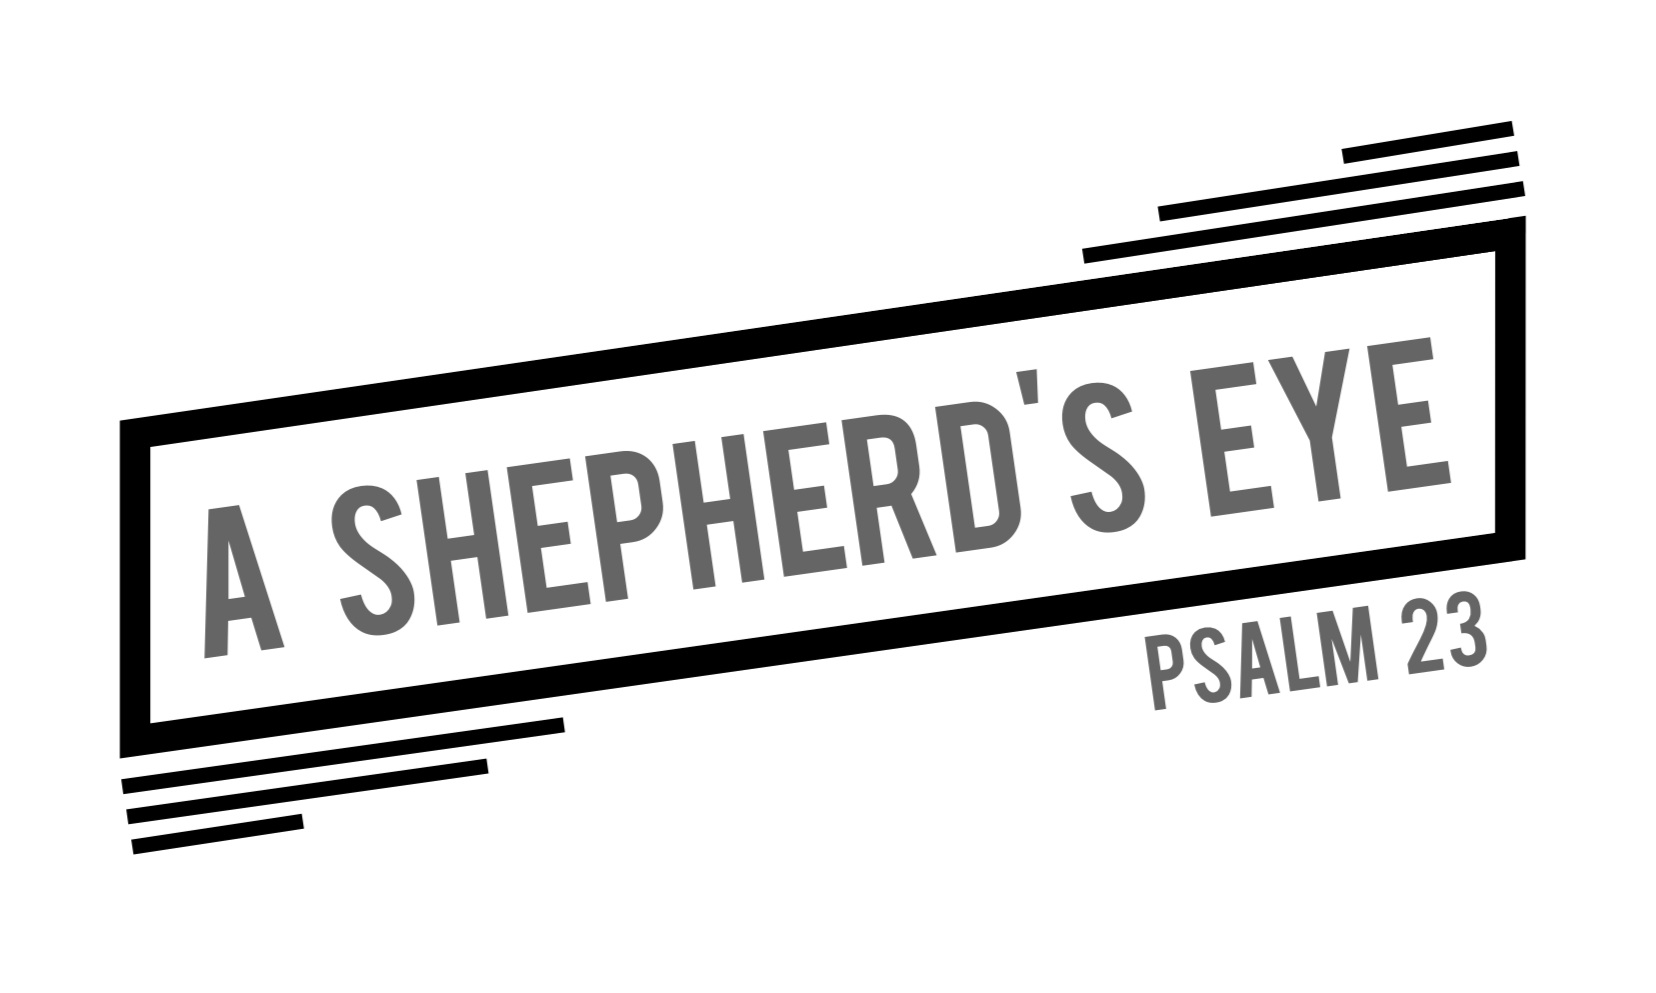 A Shepherd's perspective that we all can relate to.